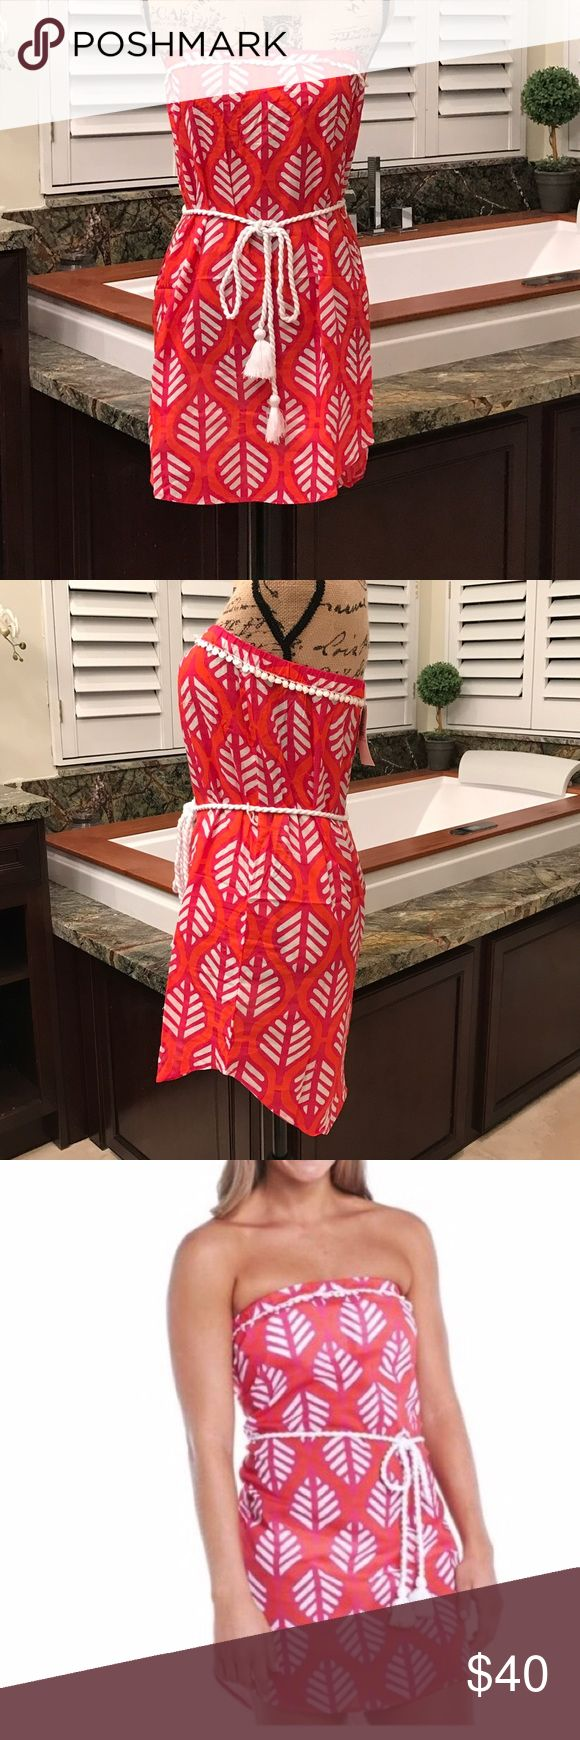 🇺🇸Red and white tube top cover up 🇺🇸 Perfect for July this cute cover up is red with a white leafy pattern and rope tie at the waist. Open to reasonable offers! Mud Pie Swim Coverups